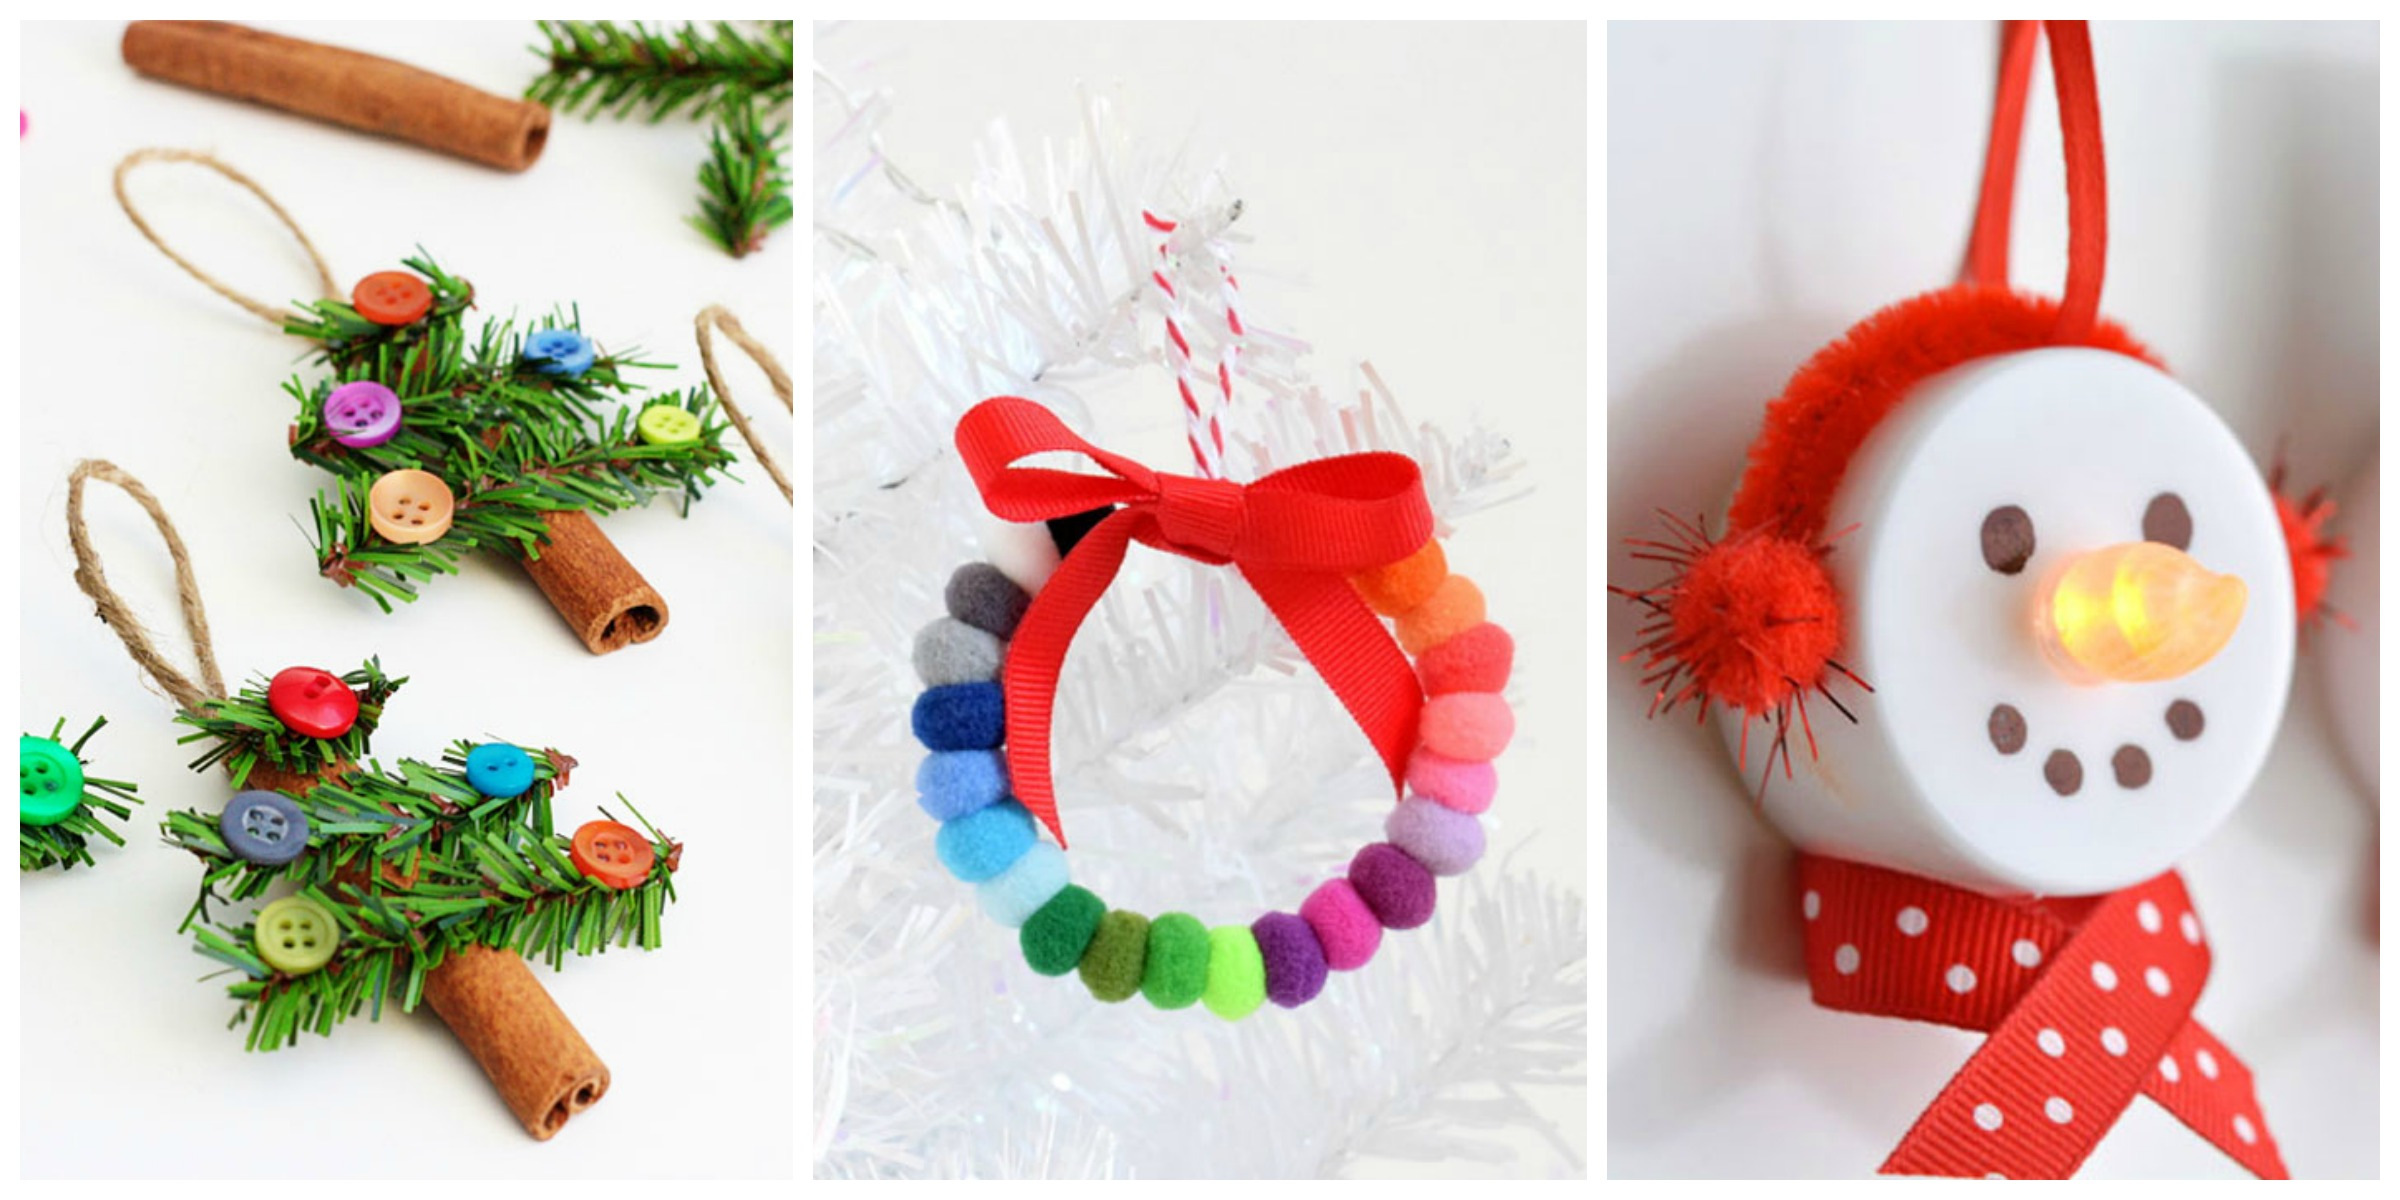 56 unique diy christmas ornaments easy homemade ornament Christmas tree ornaments ideas